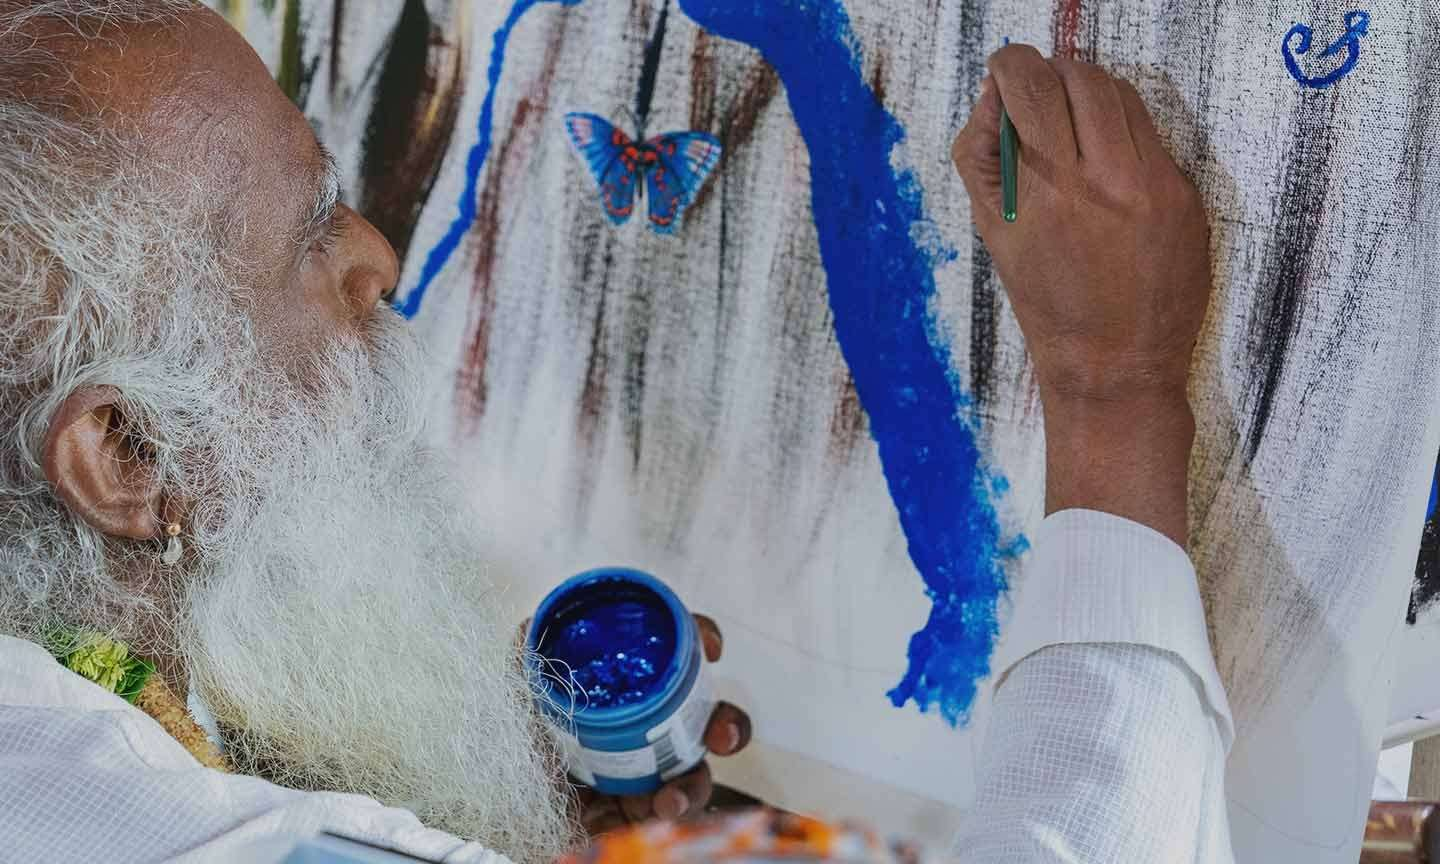 Sadhguru's Painting Auctioned For Rs 4.14 Crore